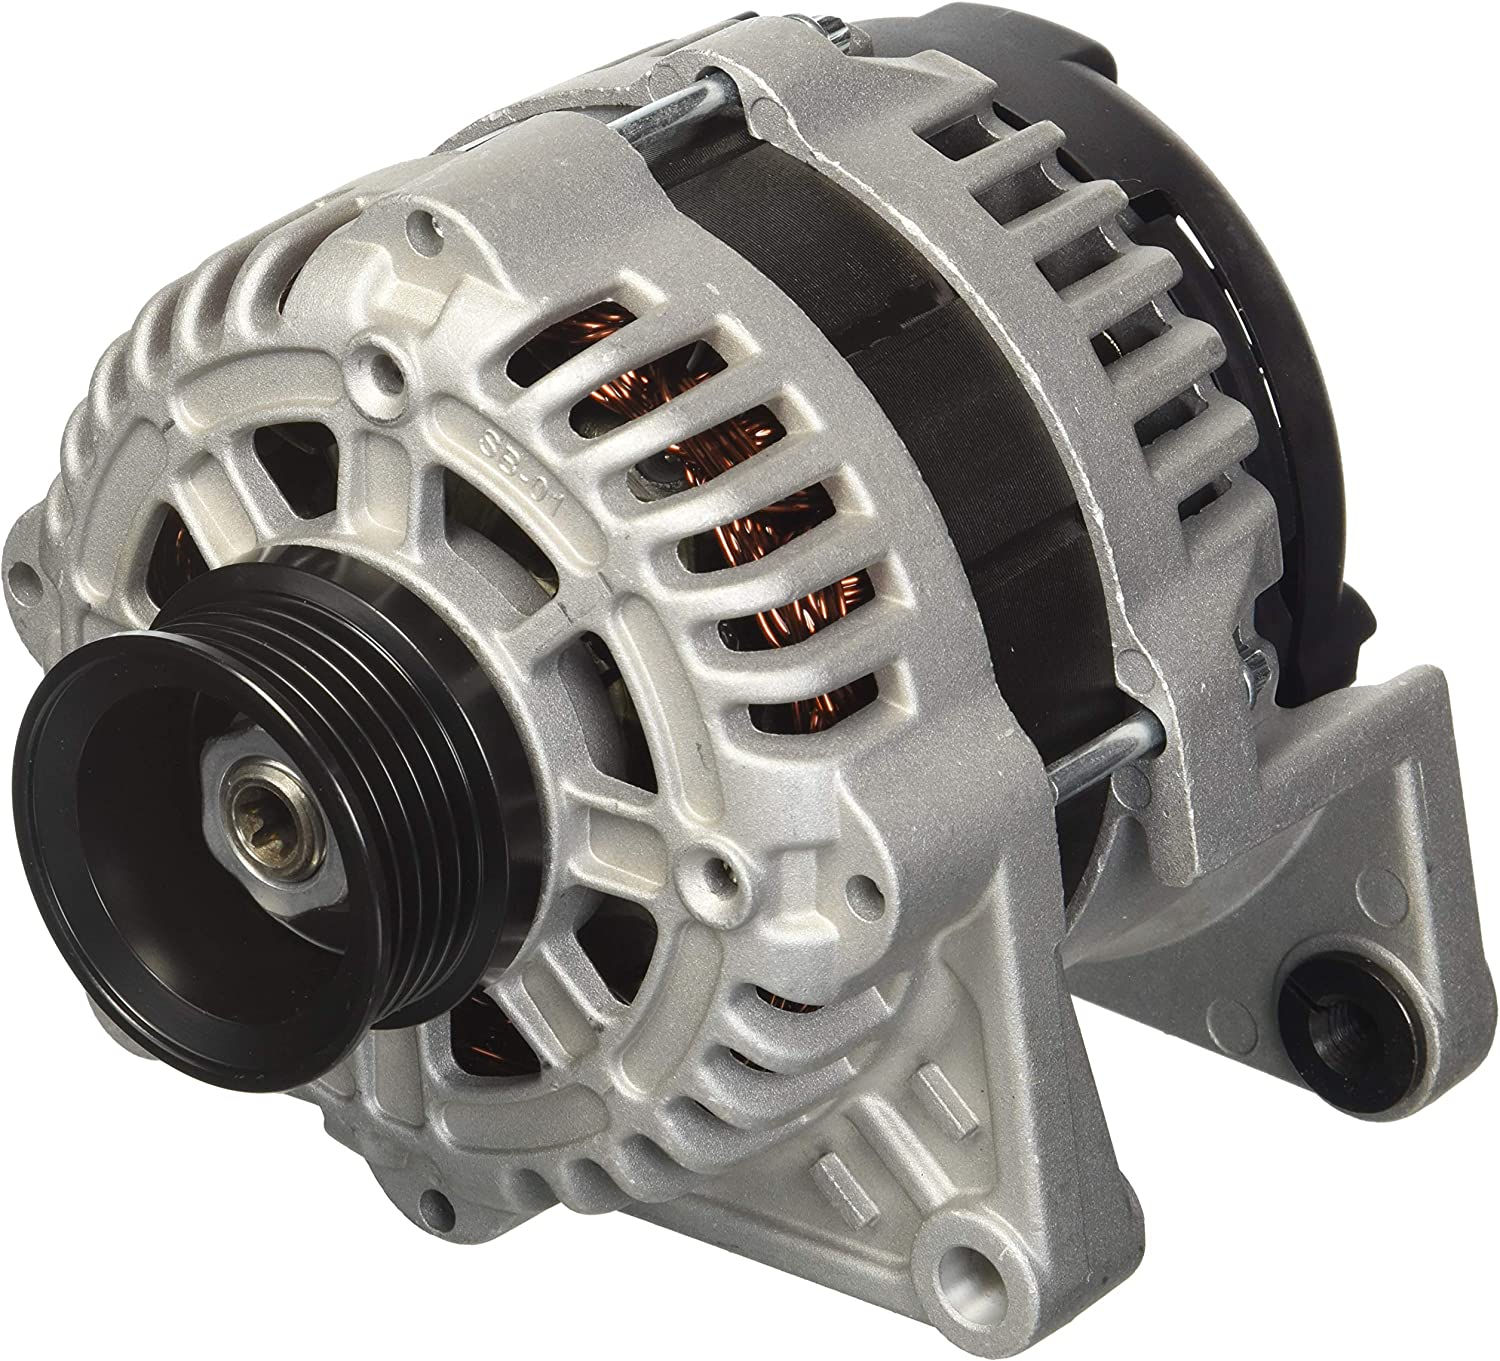 Free shipping TYC Max 53% OFF 2-08486 Replacement Pack Alternator 1